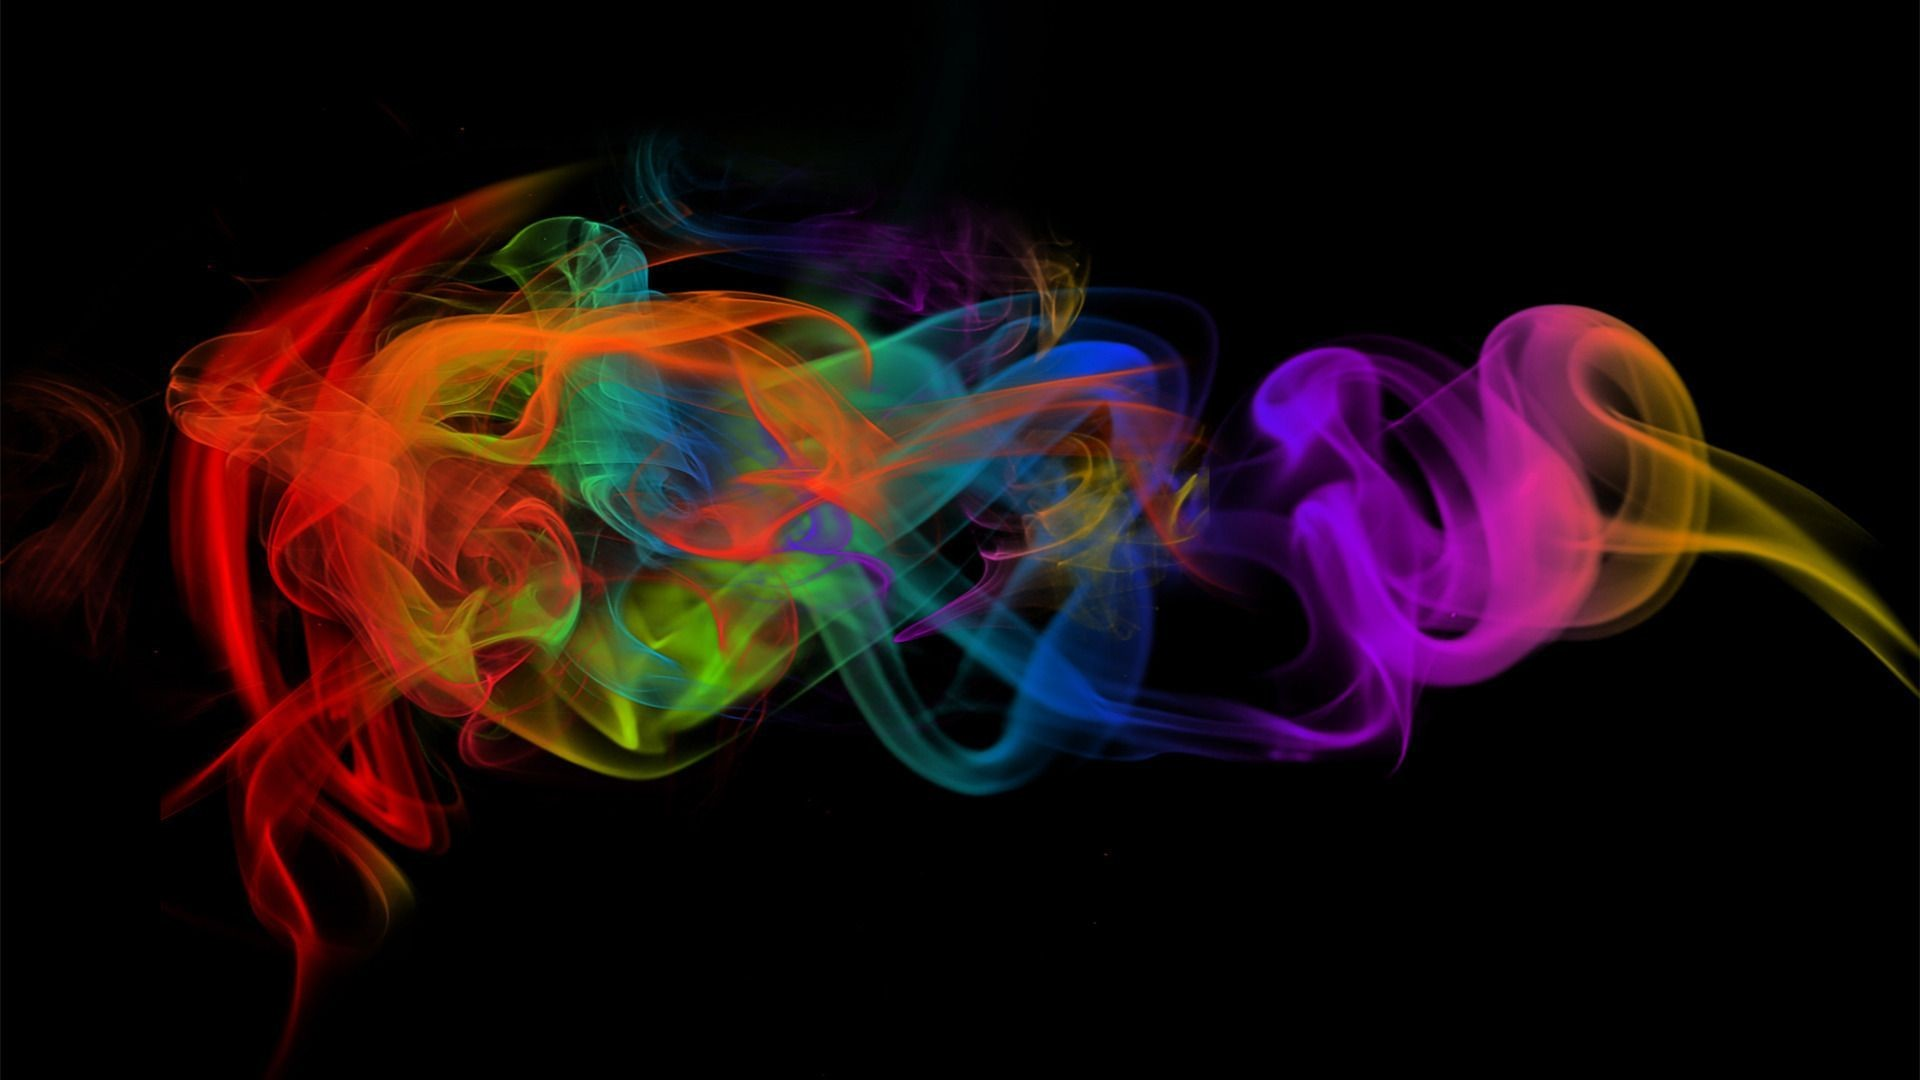 1920x1080 px Backgrounds Hd Colorful Smoke